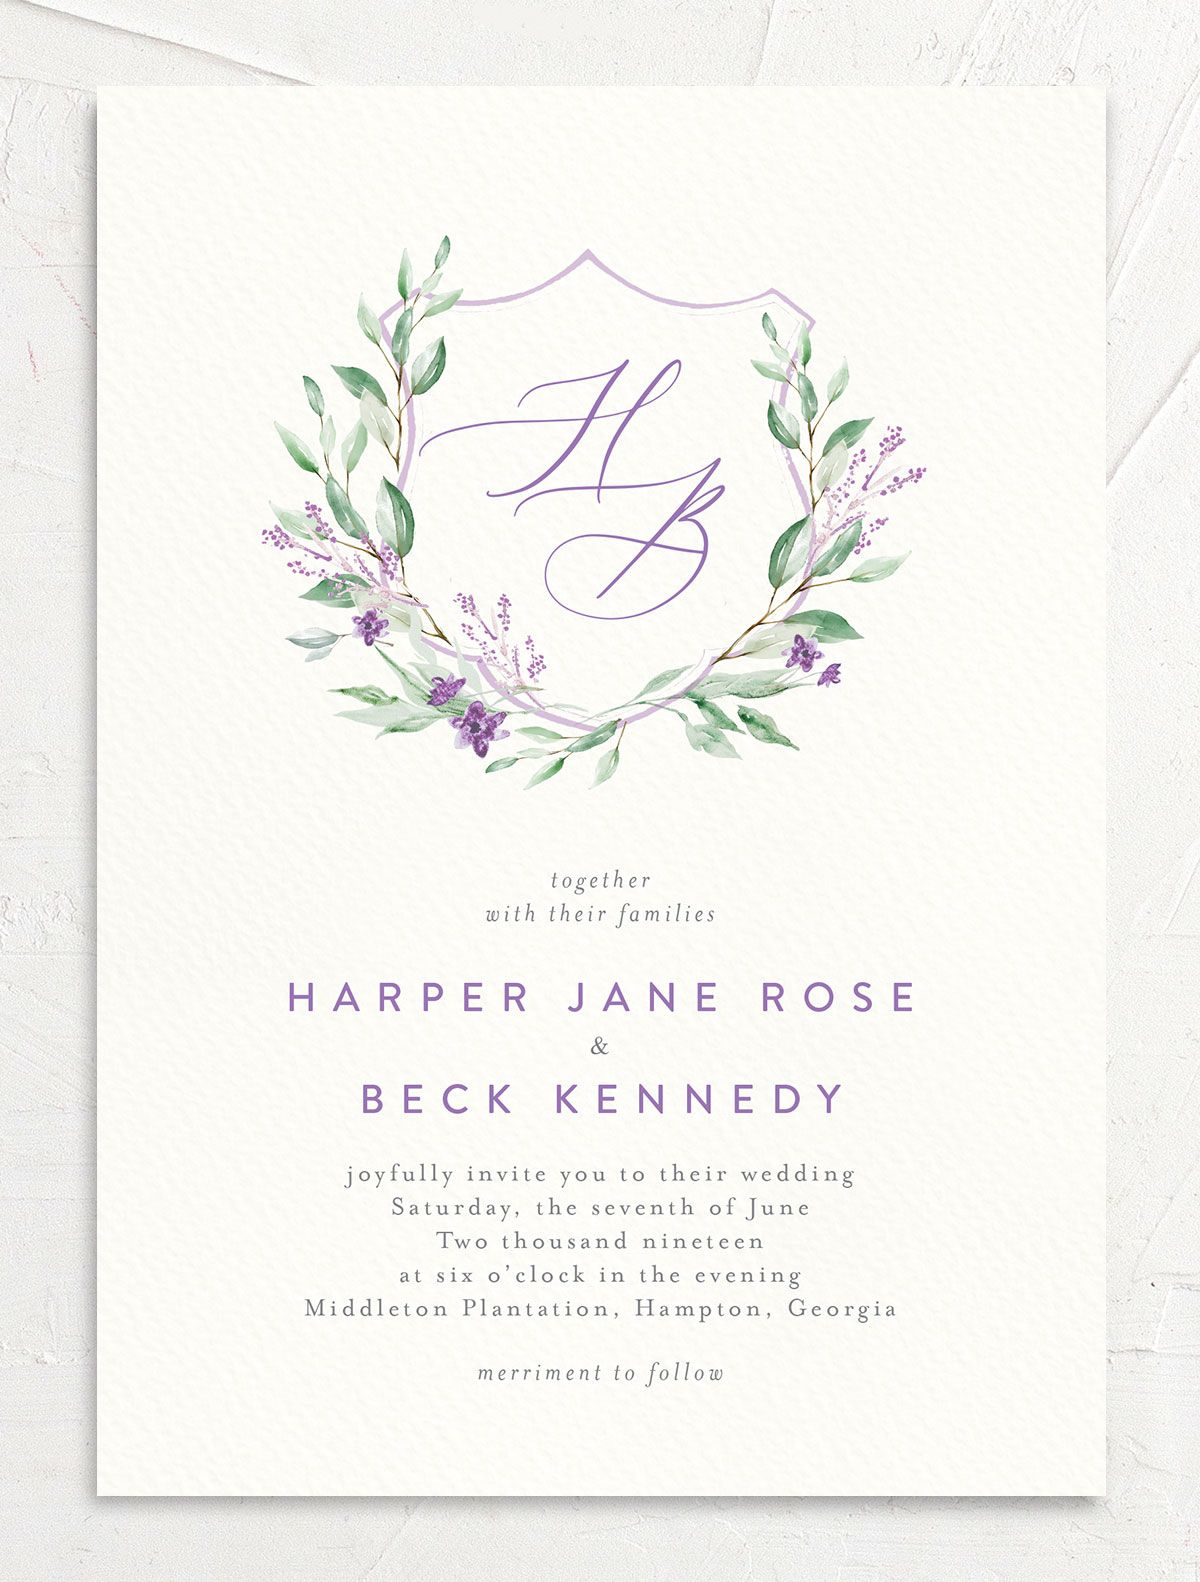 watercolor crest wedding invites in purple